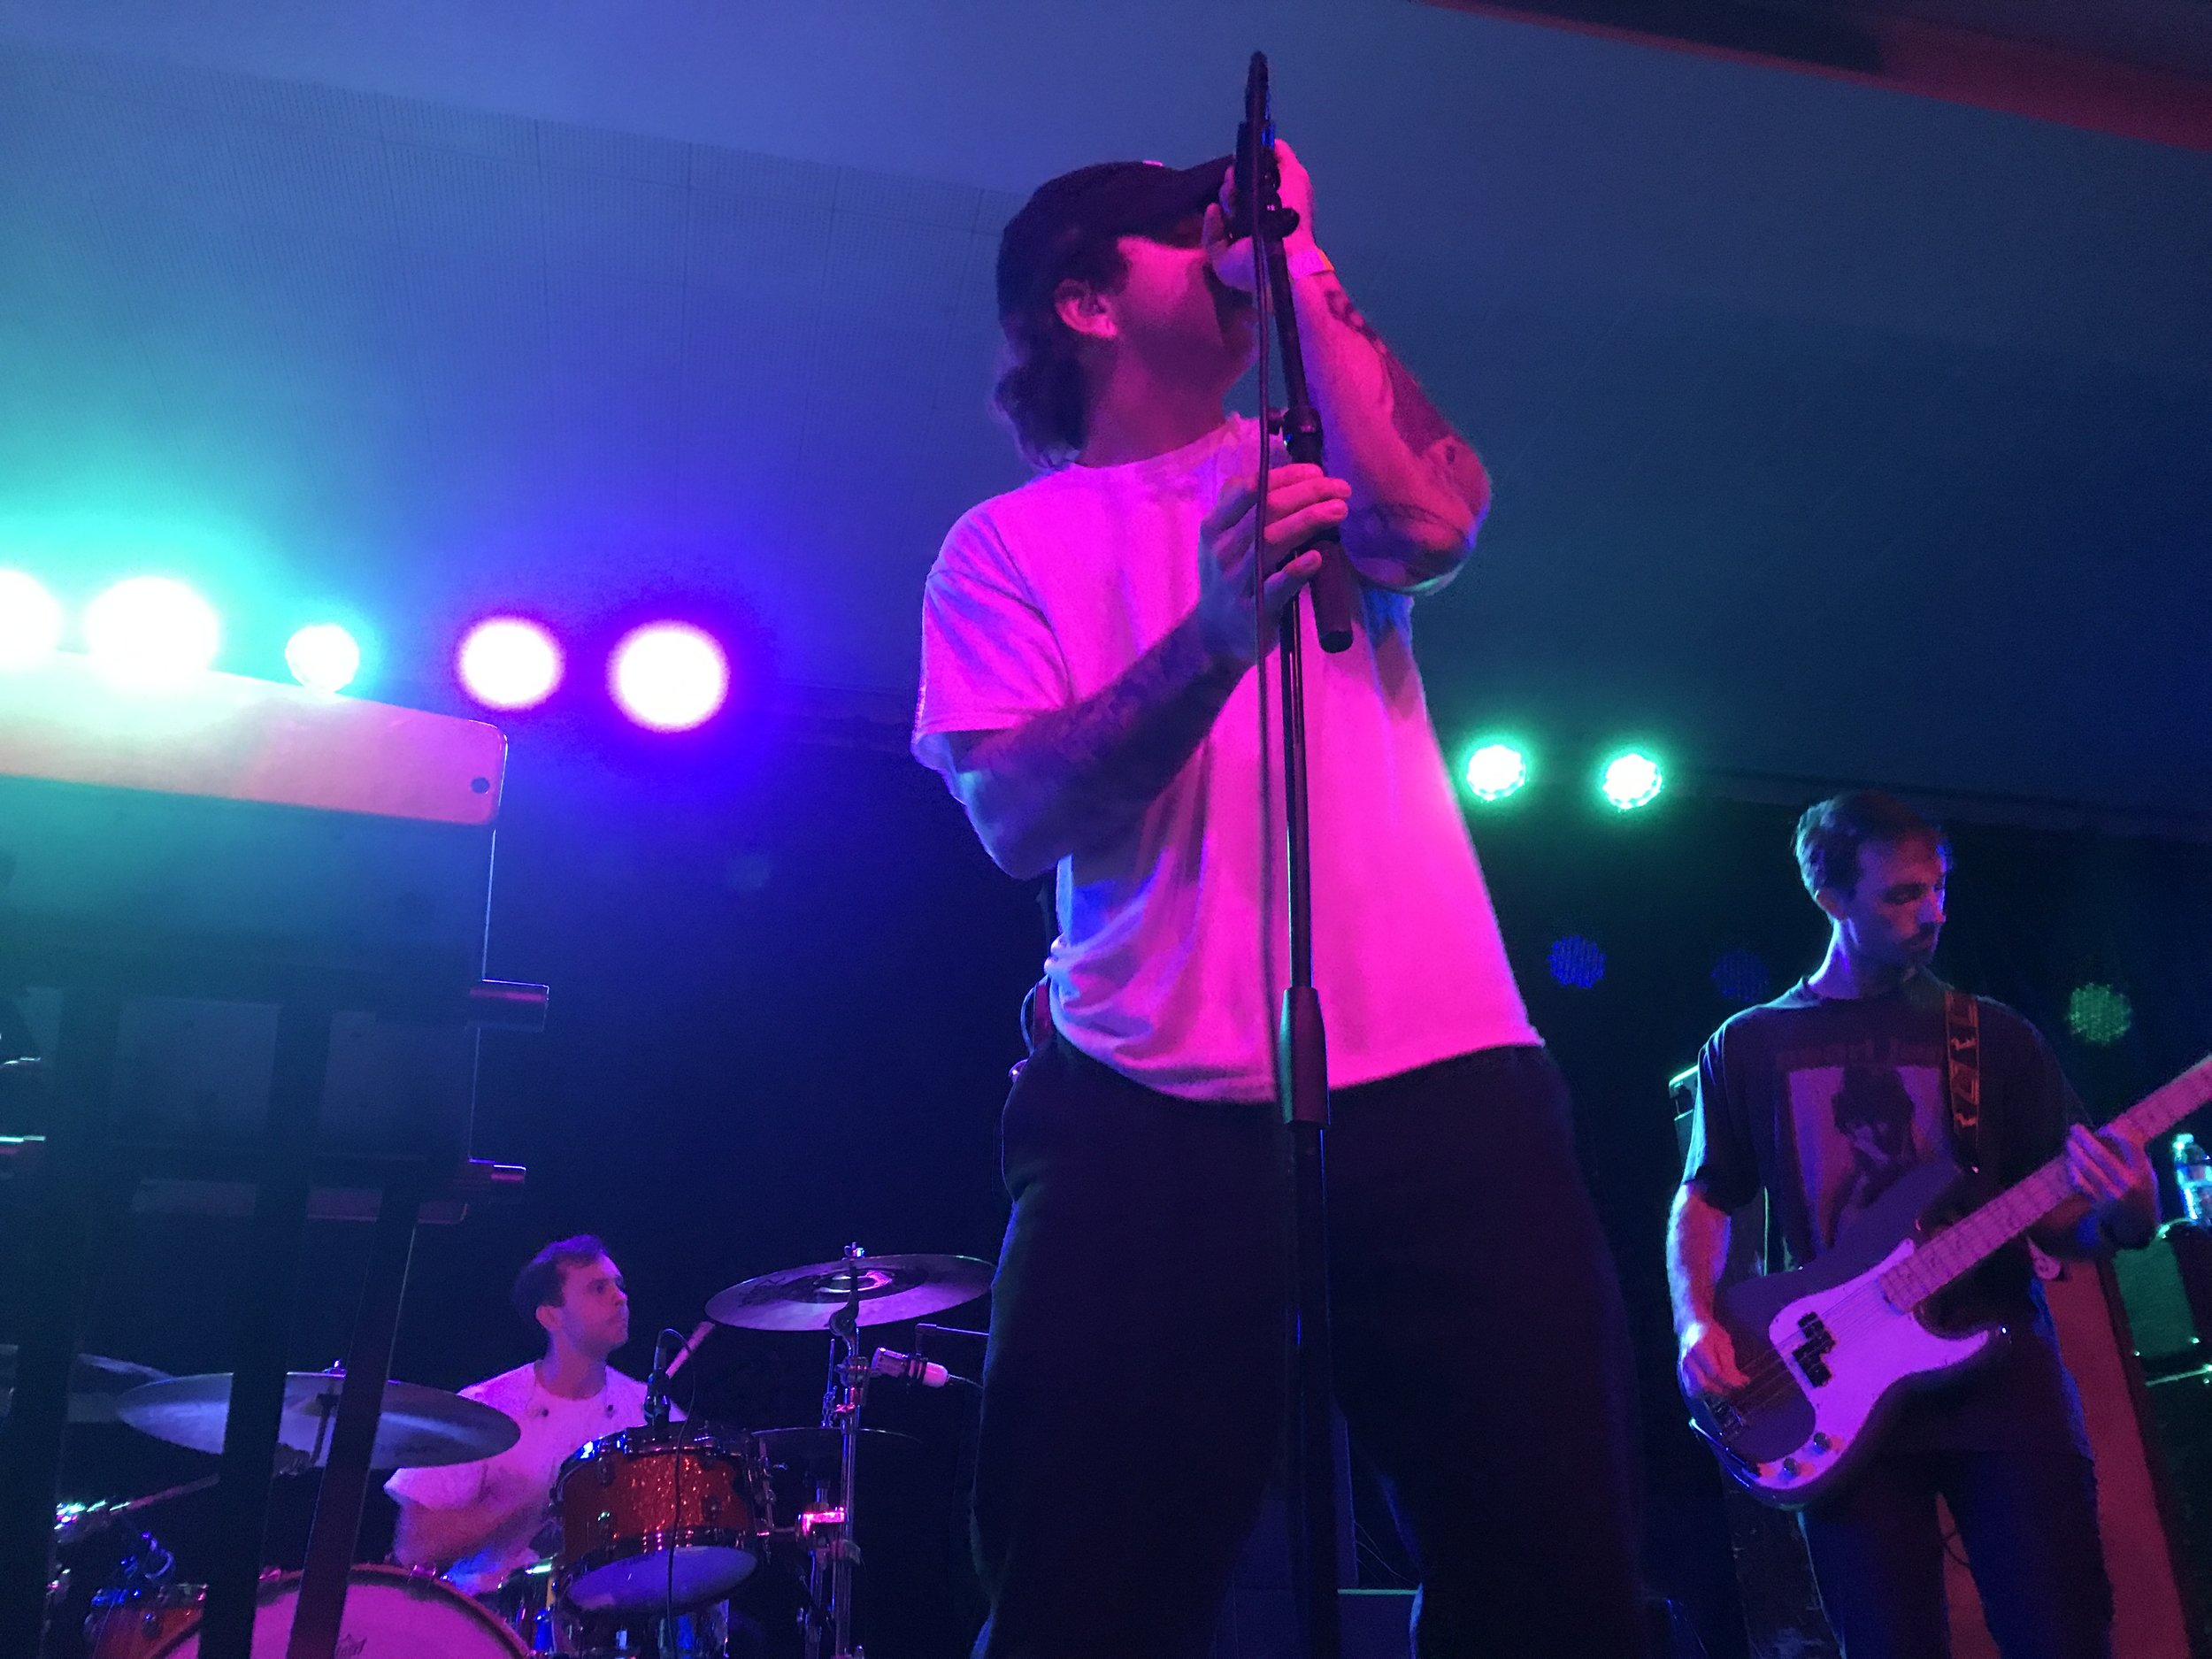 Citizen, a pop-punk band from Toledo, closed down the festival Saturday night in the Taft Ballroom.